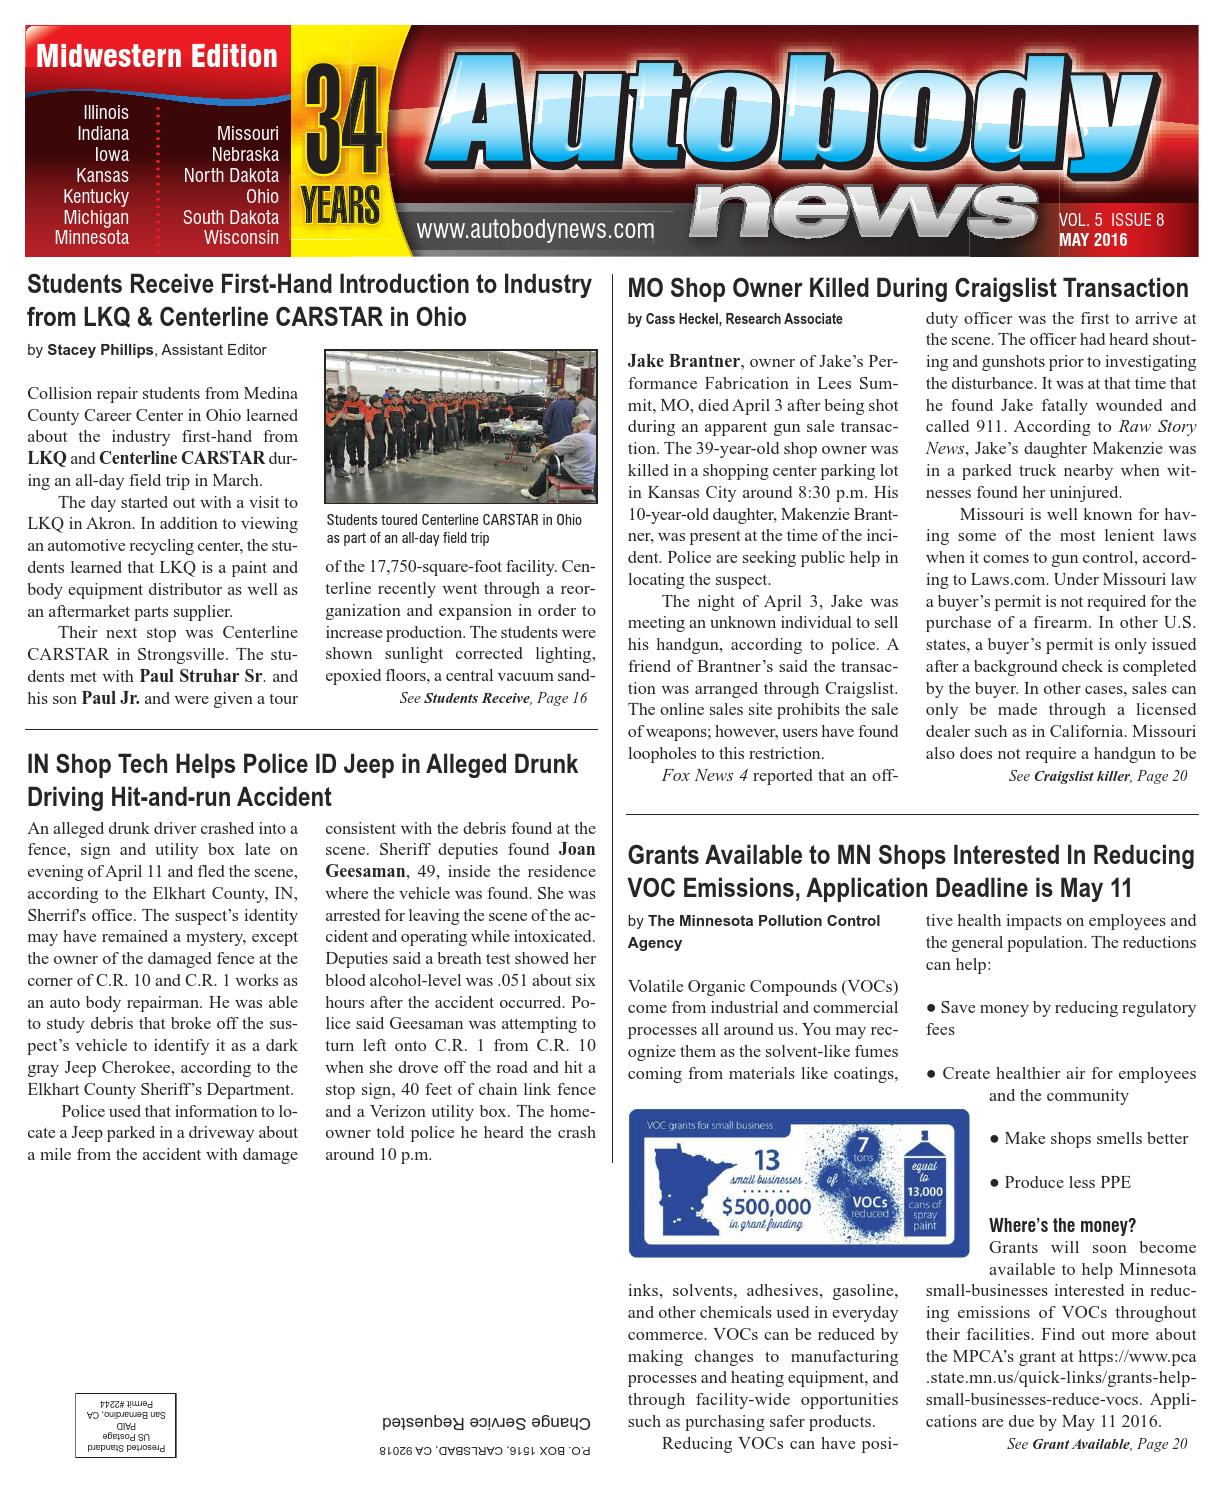 Midwestern May 2016 Issue by Autobody News - issuu